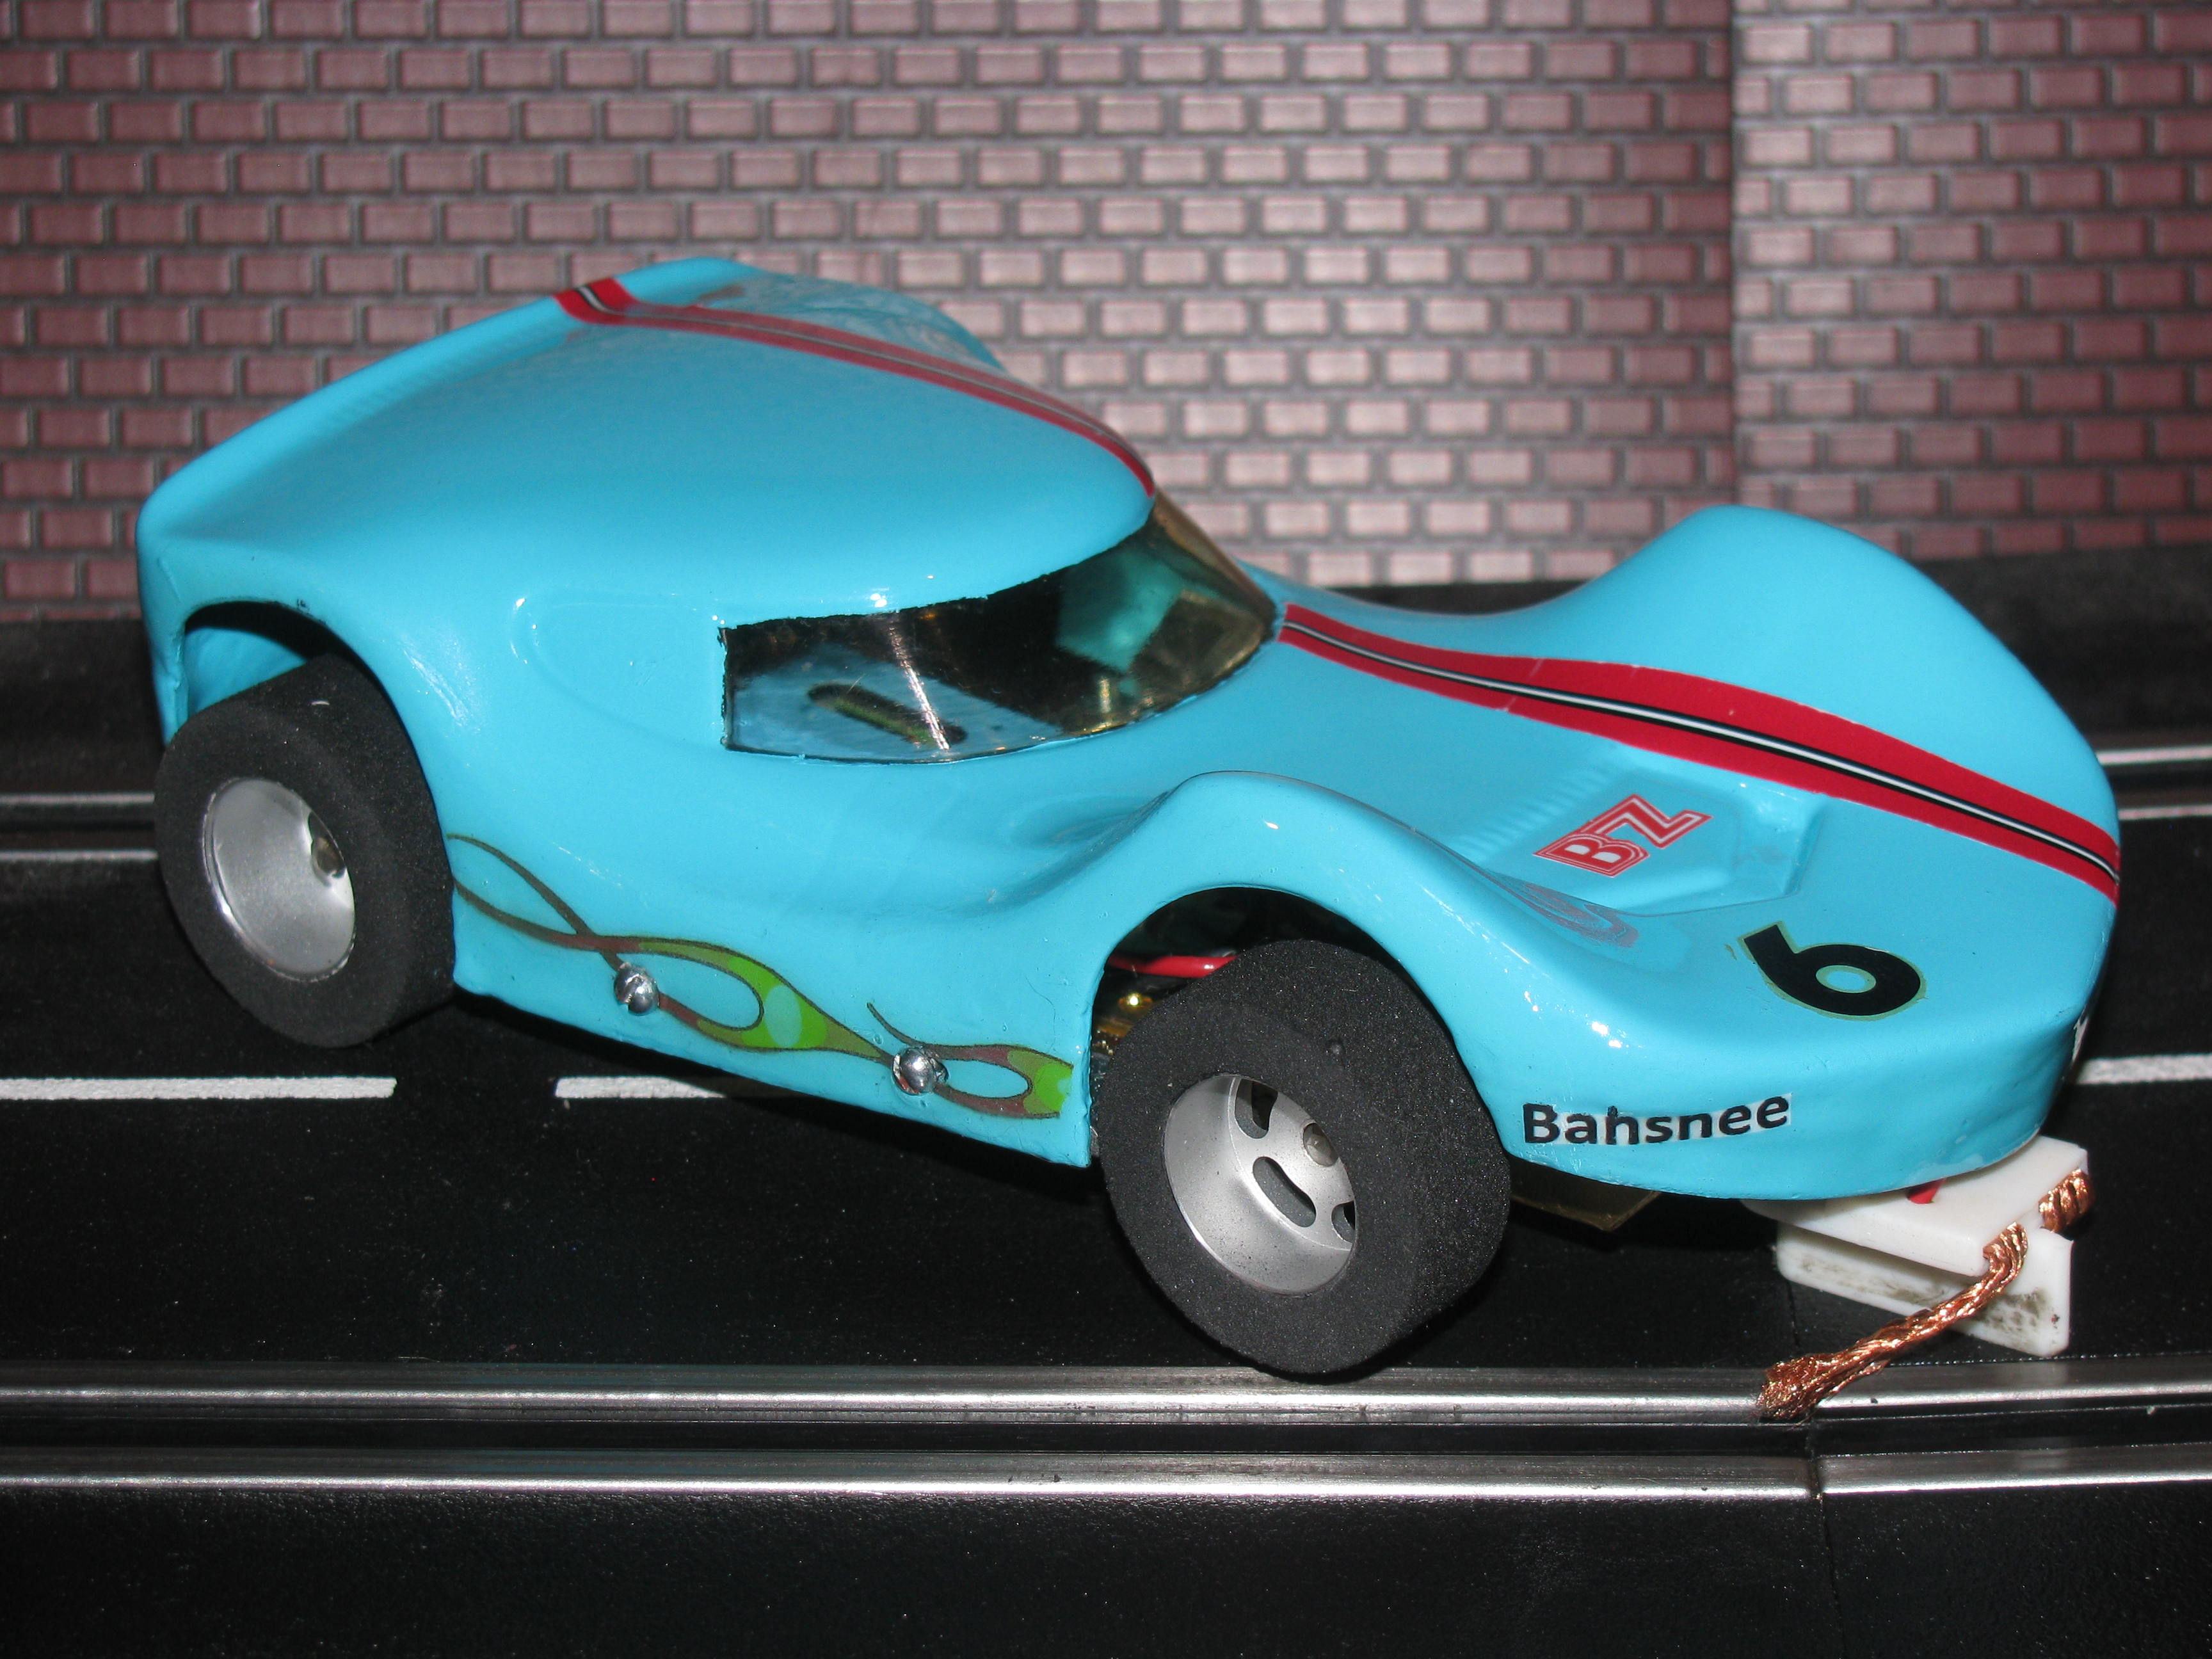 * SOLD * BZ Banshee with H&R Racing Chassis - Blue - Car 6 - 1/24 Scale